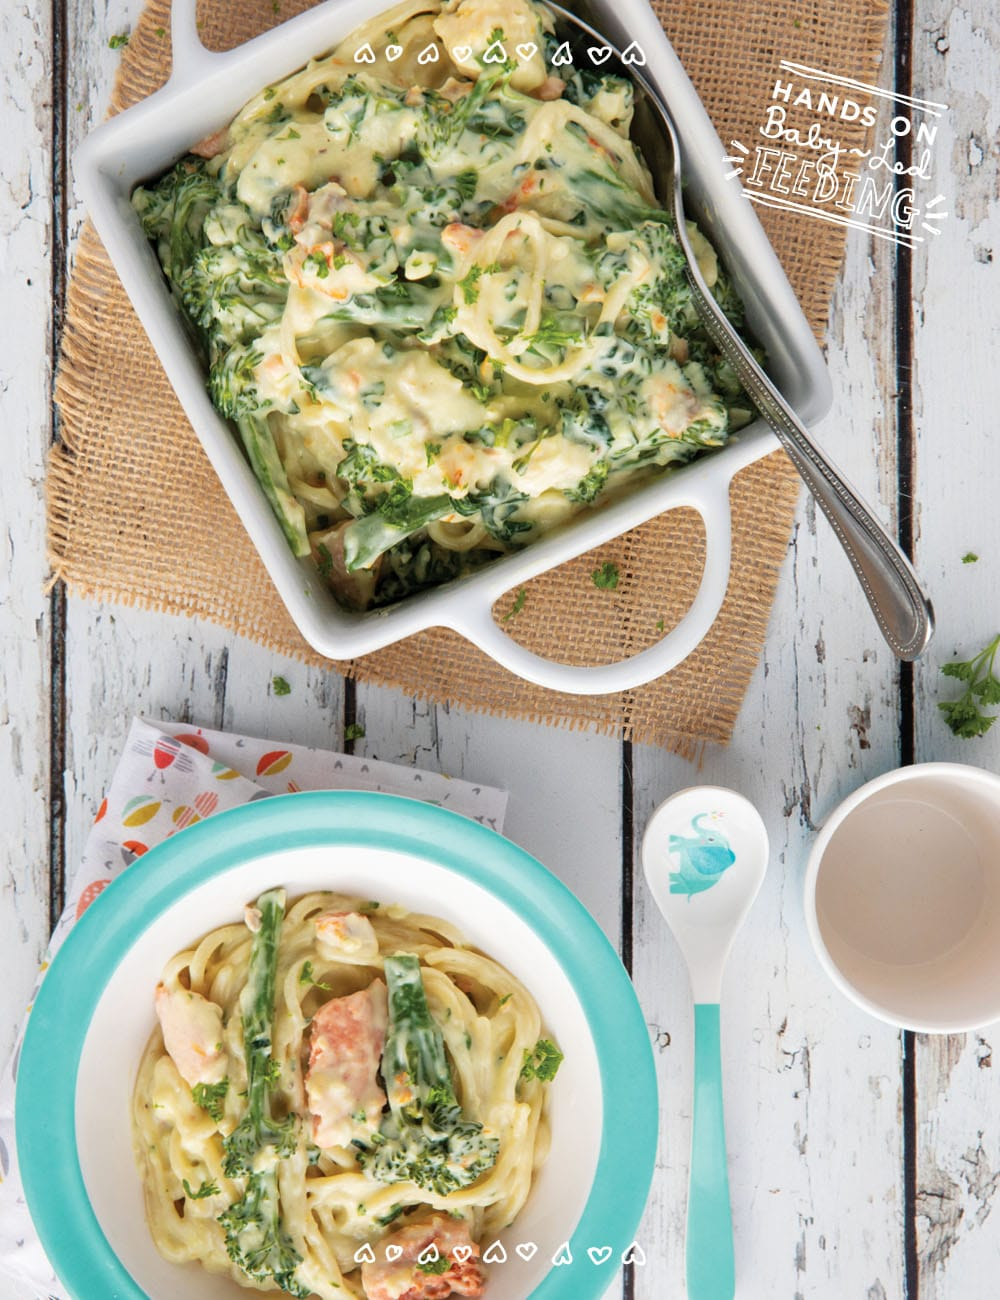 Baby Led Weaning friendly creamy seafood pasta with crushed garlic, Irish cream, tenderstem broccoli, and kale. An easy healthy recipe for the entire family that is loaded with Omega 3s, vitamin C, A, and K! #babyledweaning #babyledfeeding #pasta #seafood #seafoodpasta #familyfood